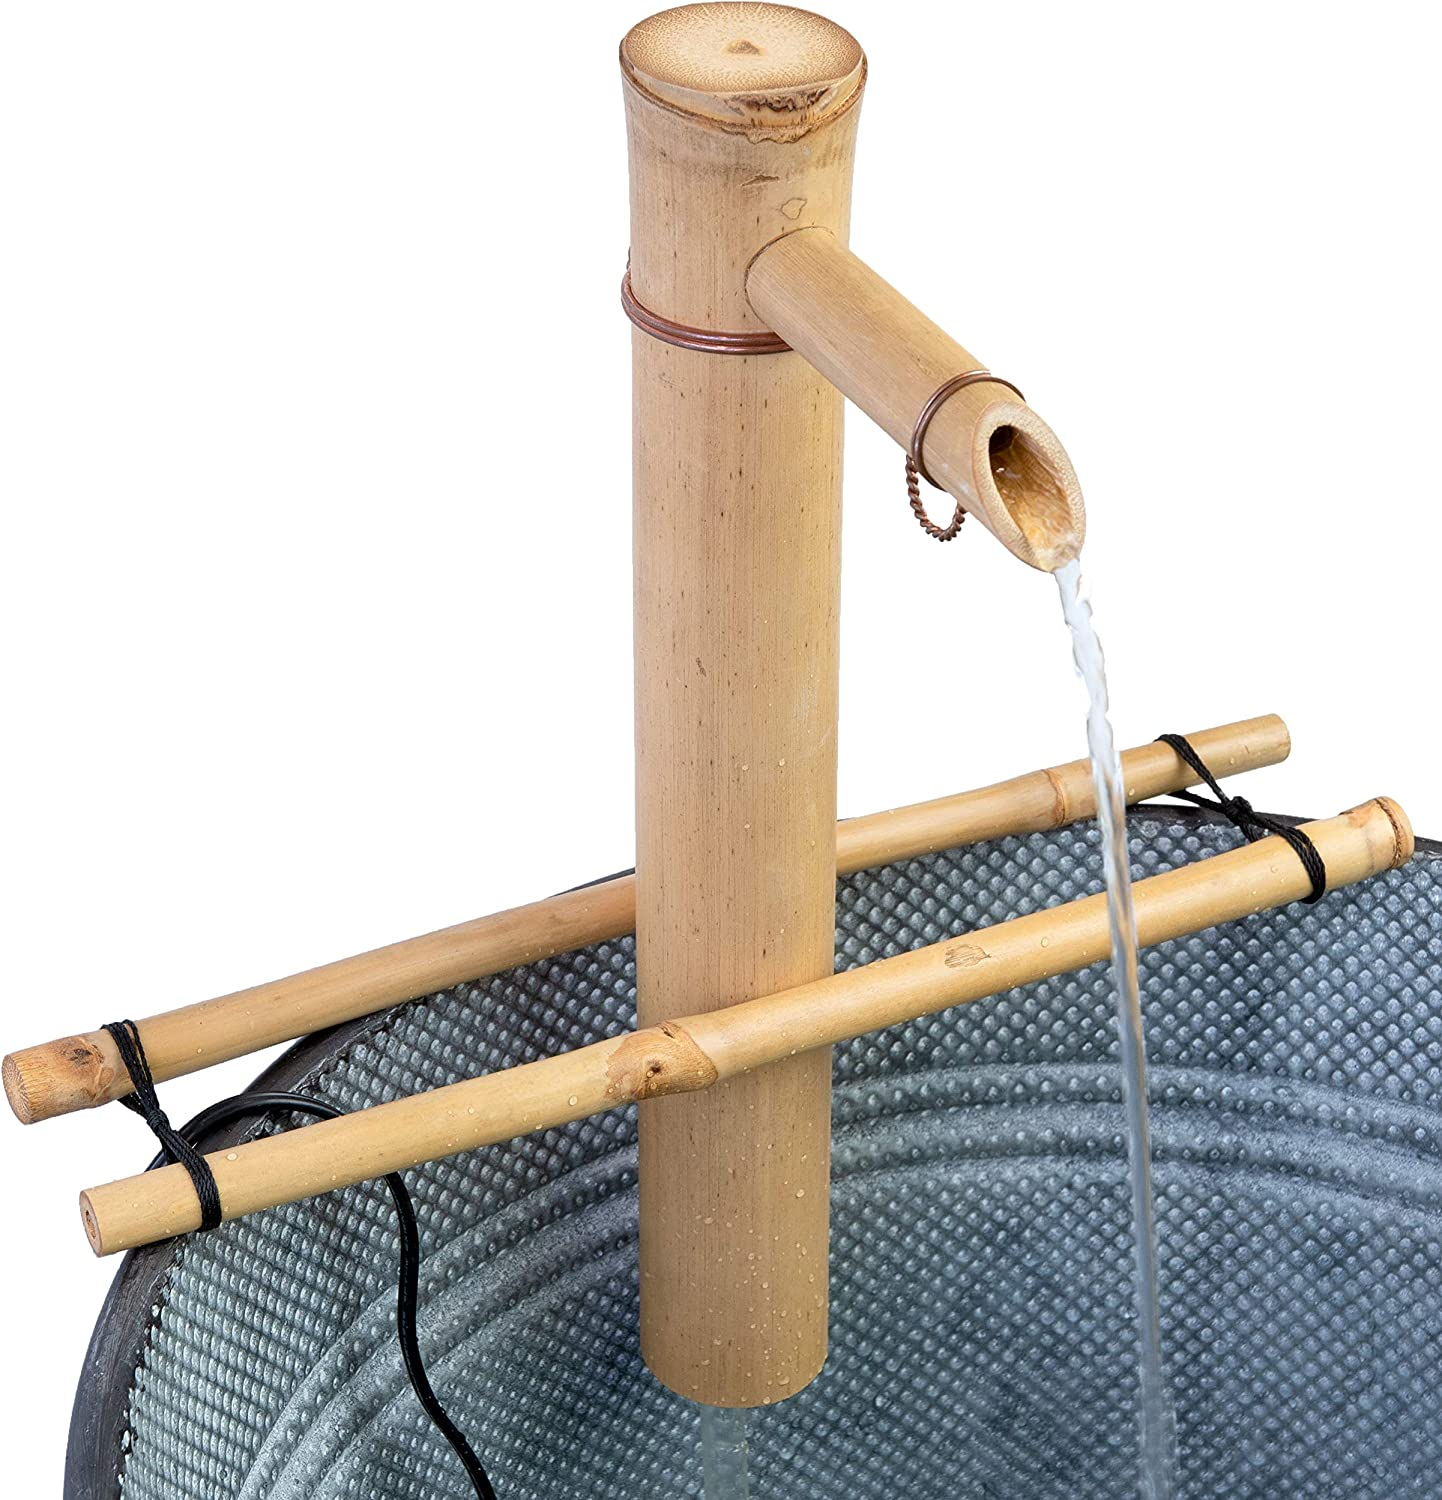 Bamboo Accents Water Fountain & Pump Kit - 12-inch Wide, Adjustable Branch Style Support, Split-Resistant Bamboo – DIY Indoor/Outdoor Zen Garden, Variable Height to Create The Sound You Desire